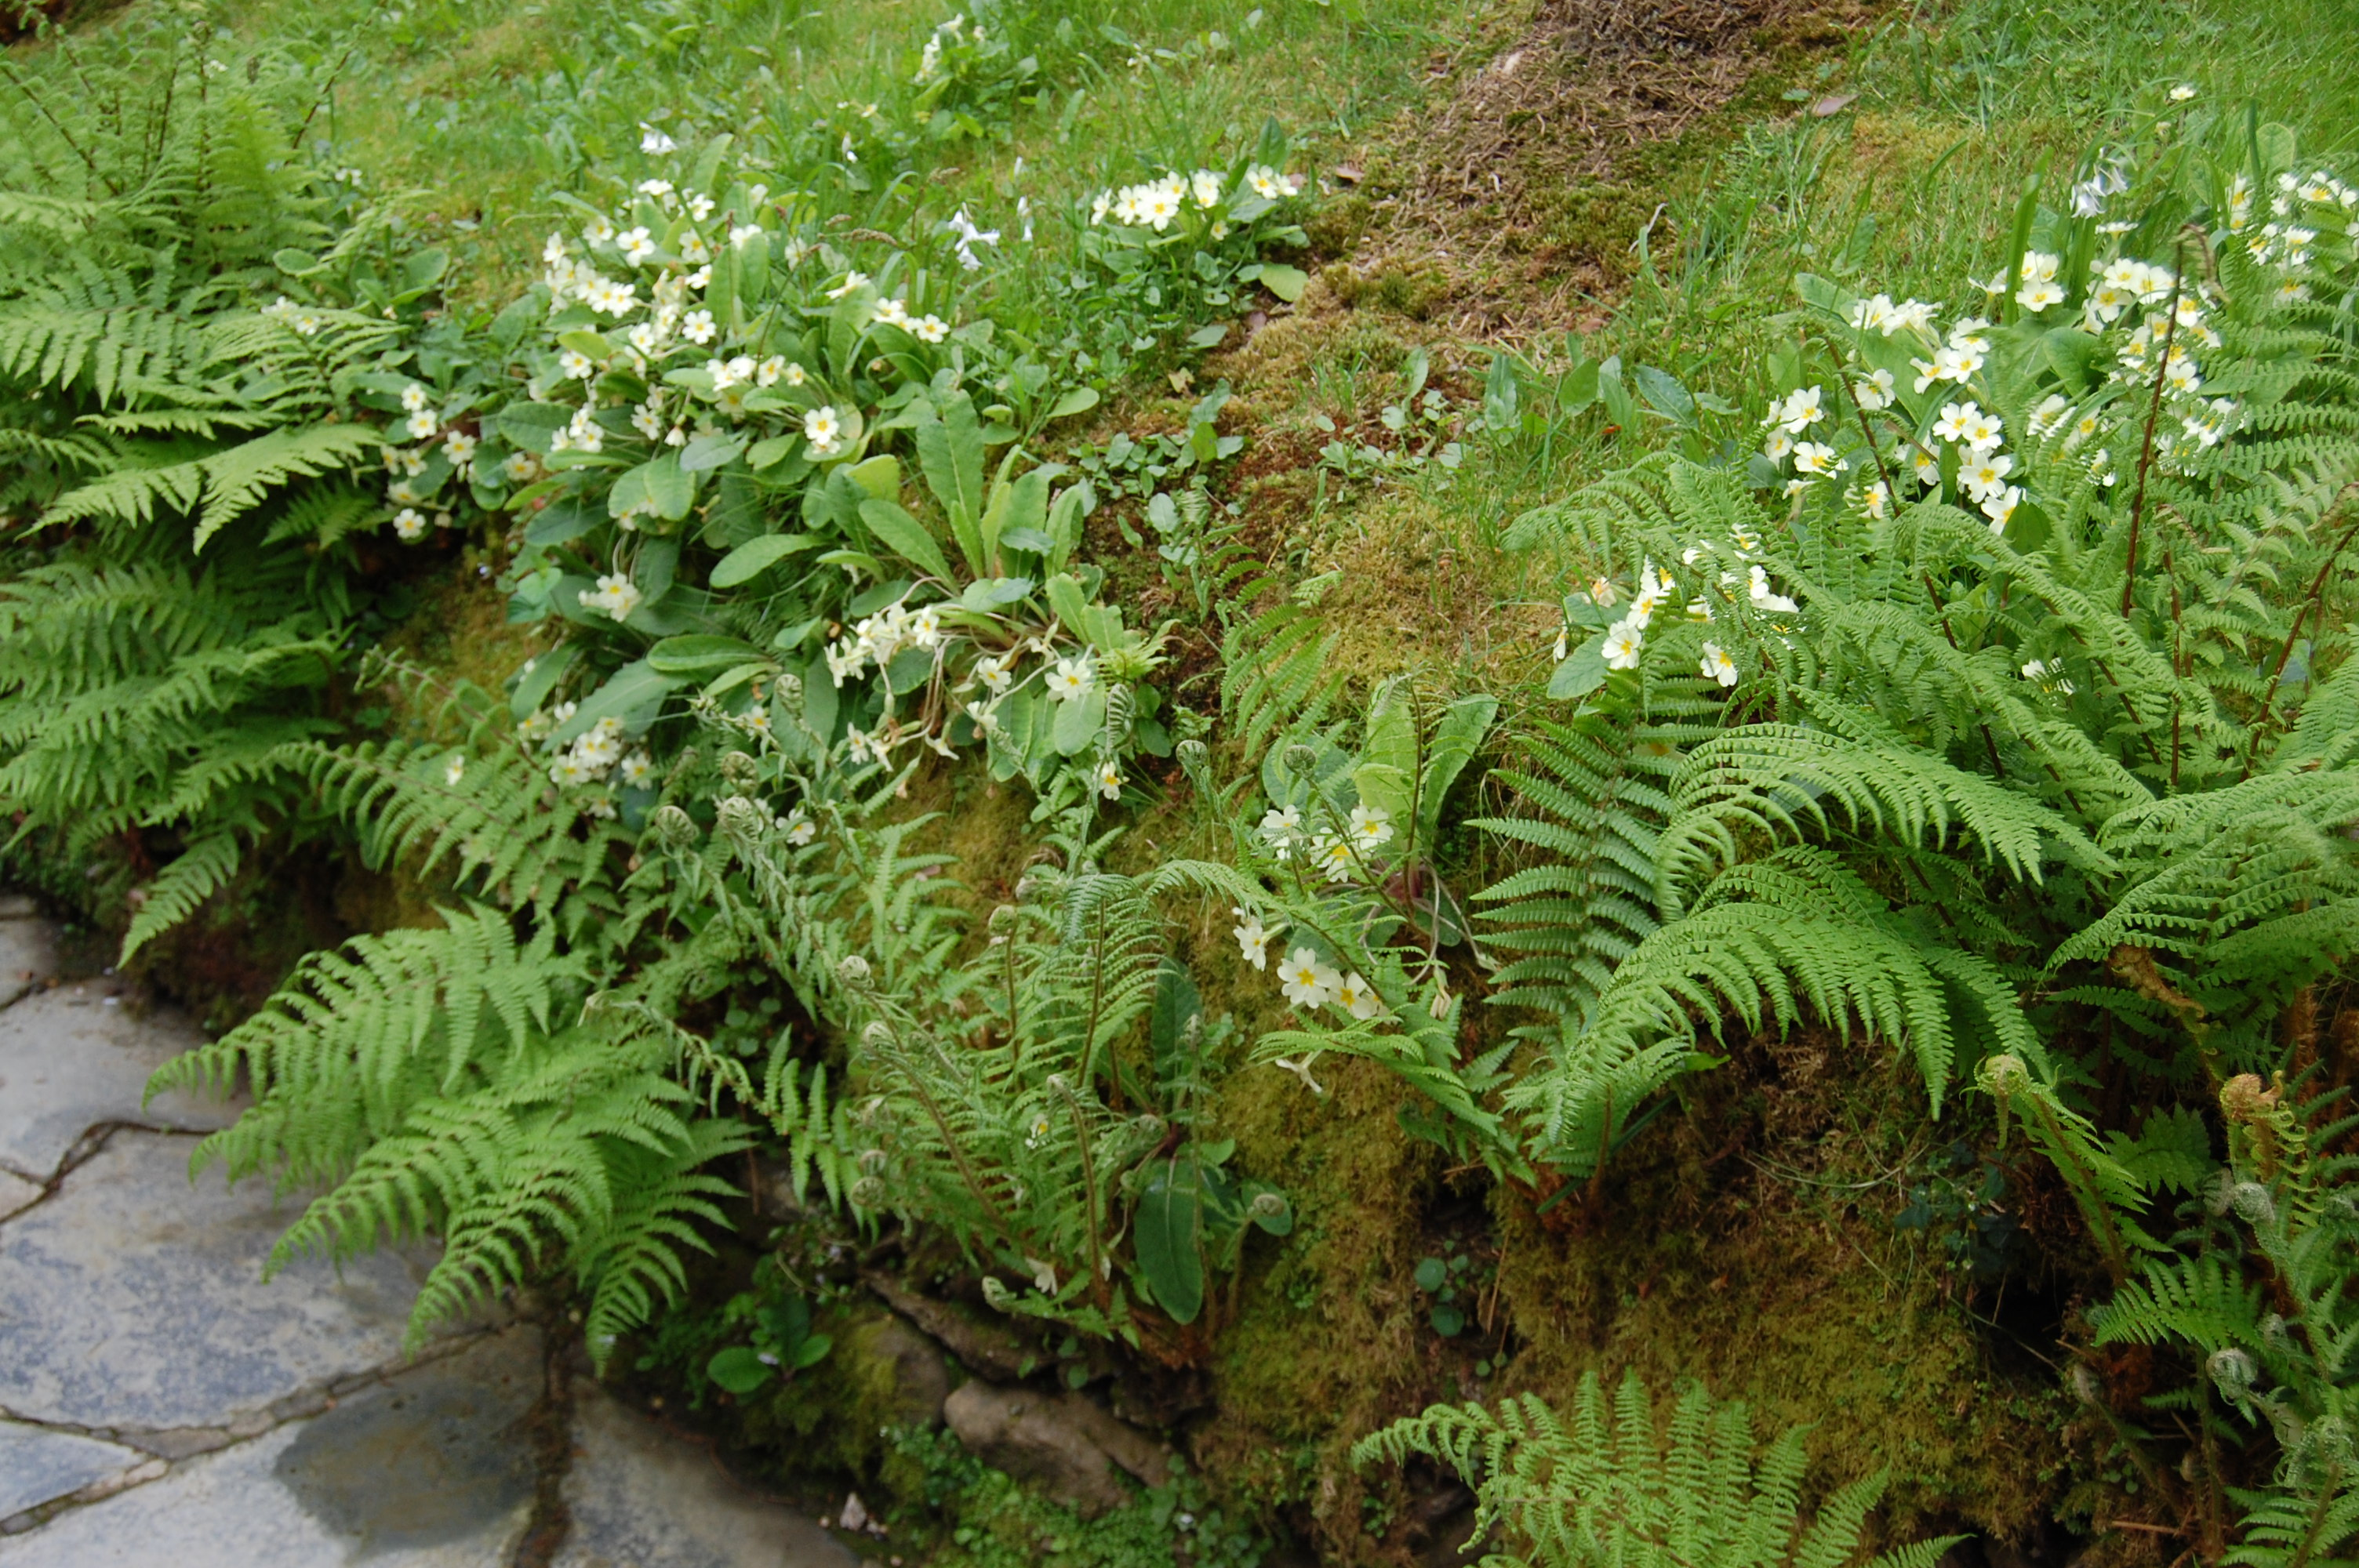 High rainfall ensures that surfaces that would remain bare elsewhere get covered in vegetation - Primula vulgaris and ferns on a stone retaining wall.